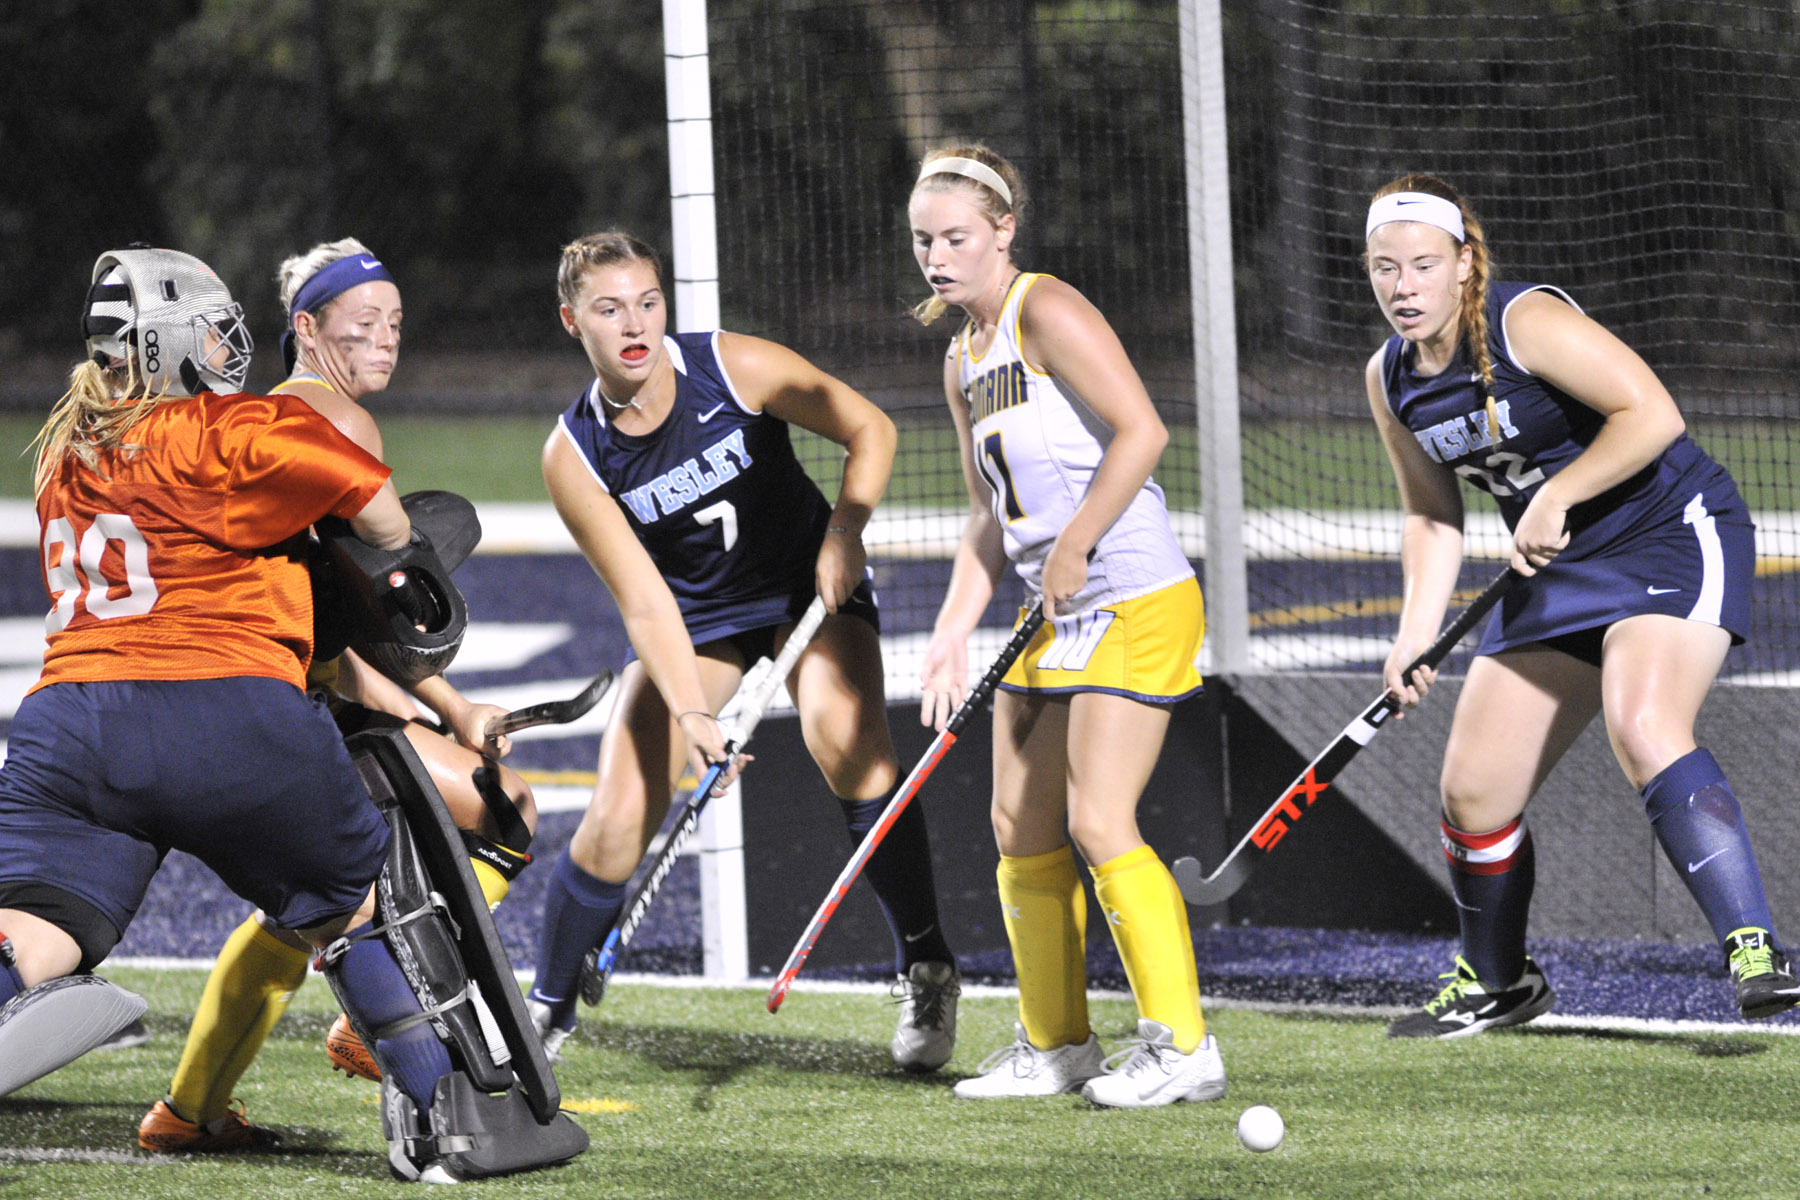 Wolverines Honor Field Hockey Mentors, Fall to Juniata